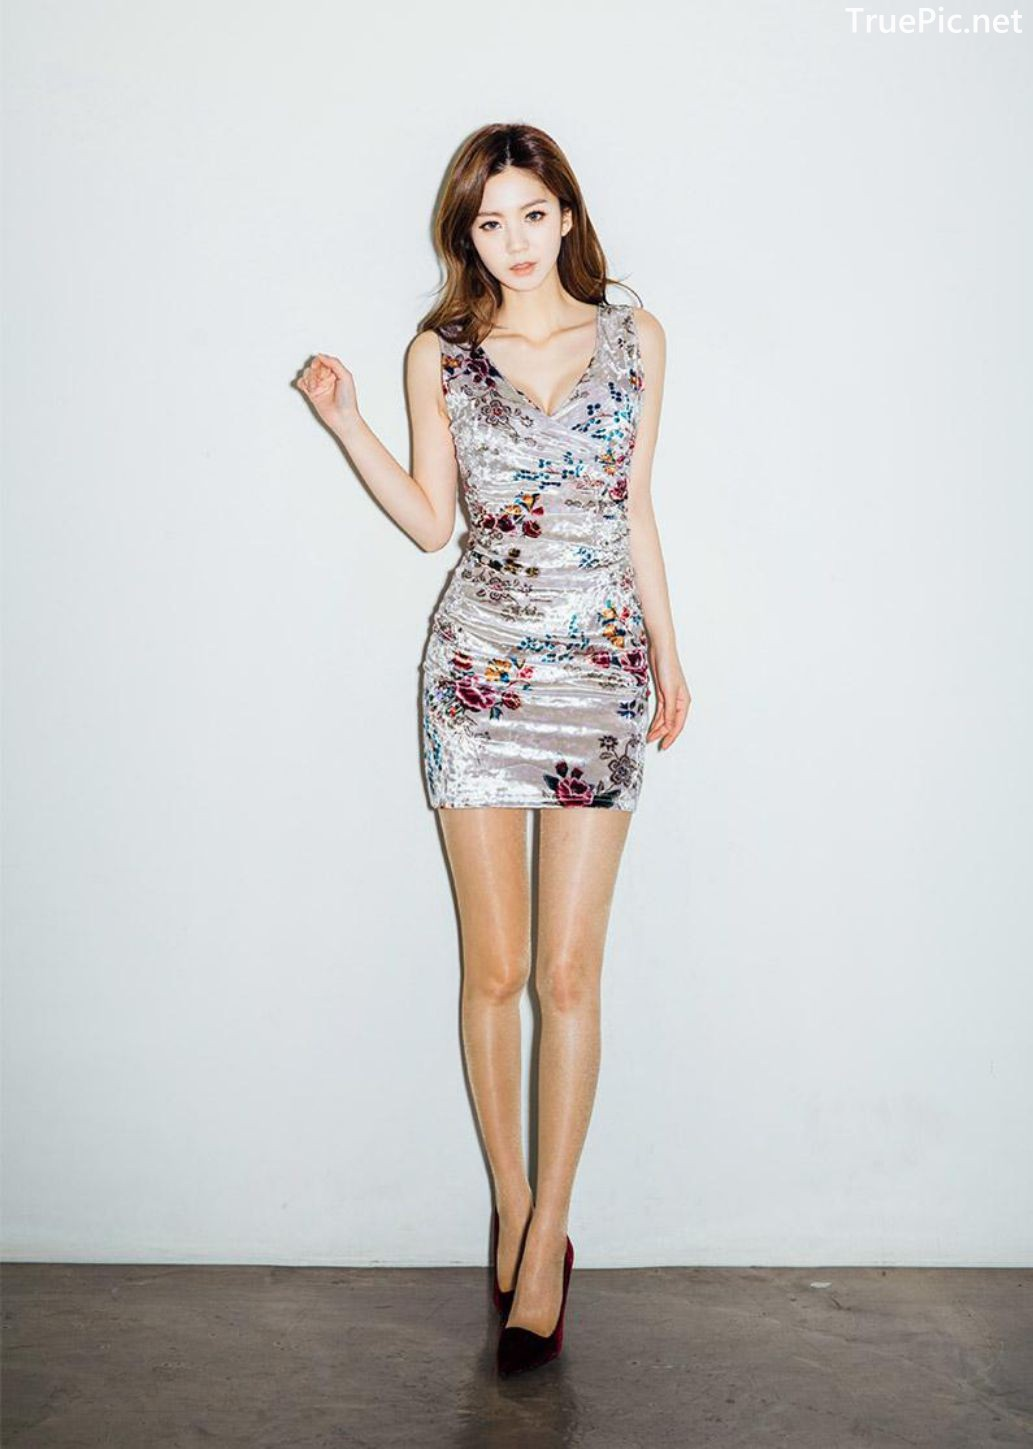 Image-Korean-Fashion-Model-Lee-Chae-Eun-Ready-For-The-Party-Evening-Wear-TruePic.net- Picture-5